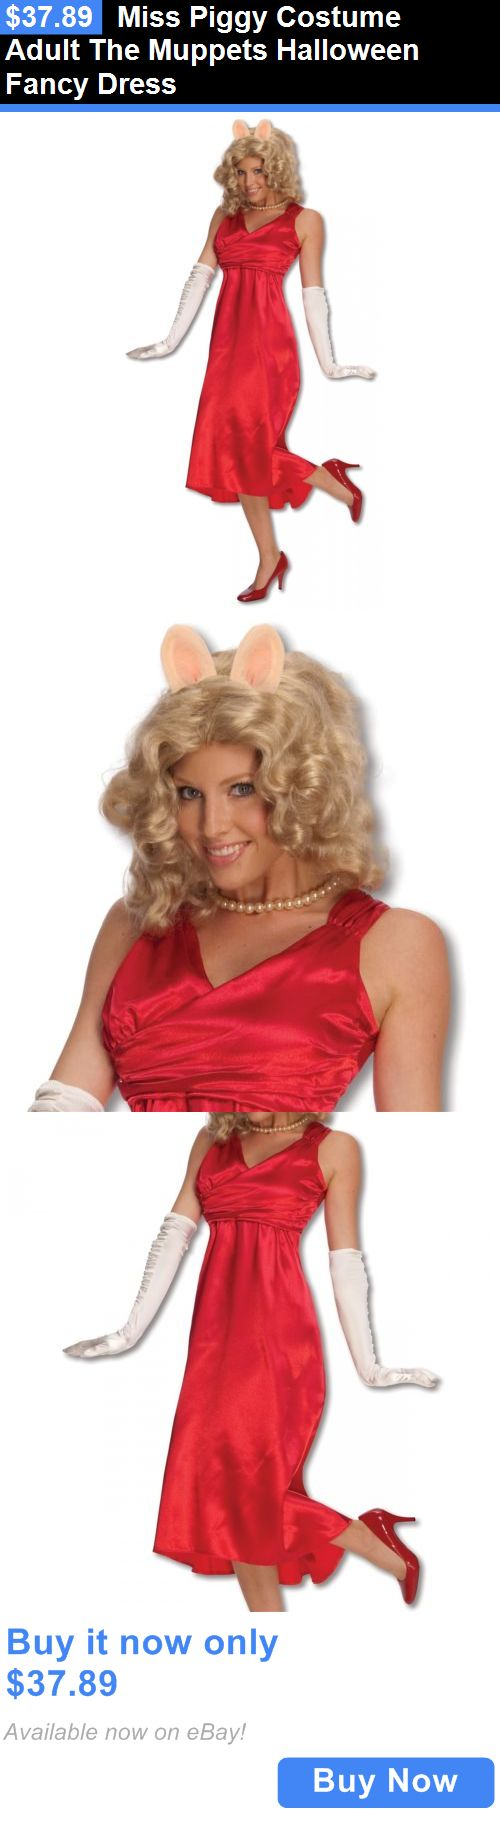 Halloween Costumes Women: Miss Piggy Costume Adult The Muppets Halloween Fancy Dress BUY IT NOW ONLY: $37.89